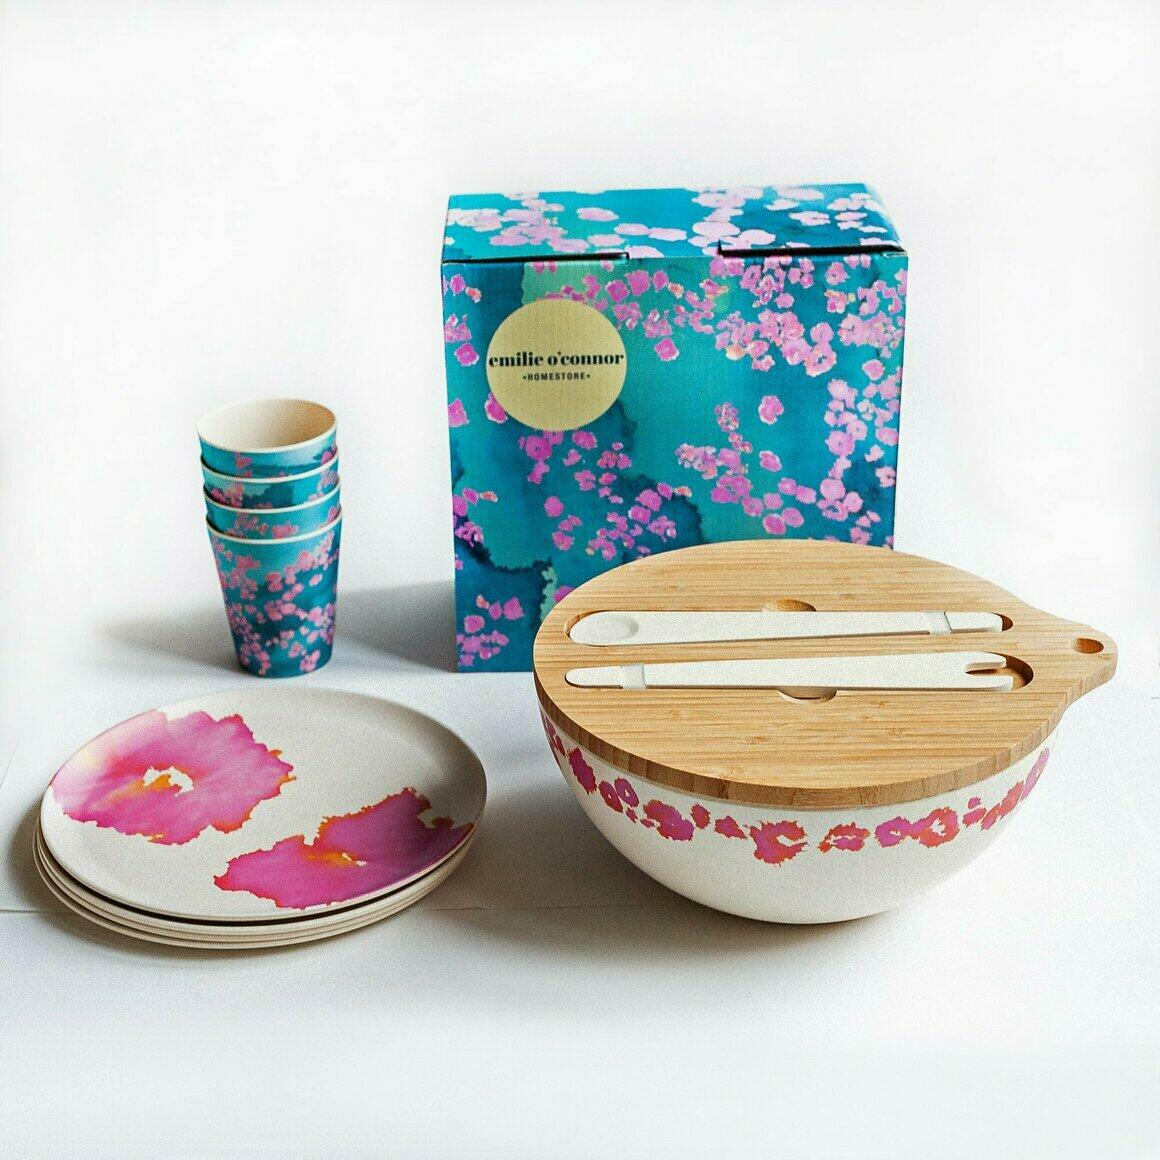 Dinnerware Gift Set with Coral Reef Design | Trada Marketplace